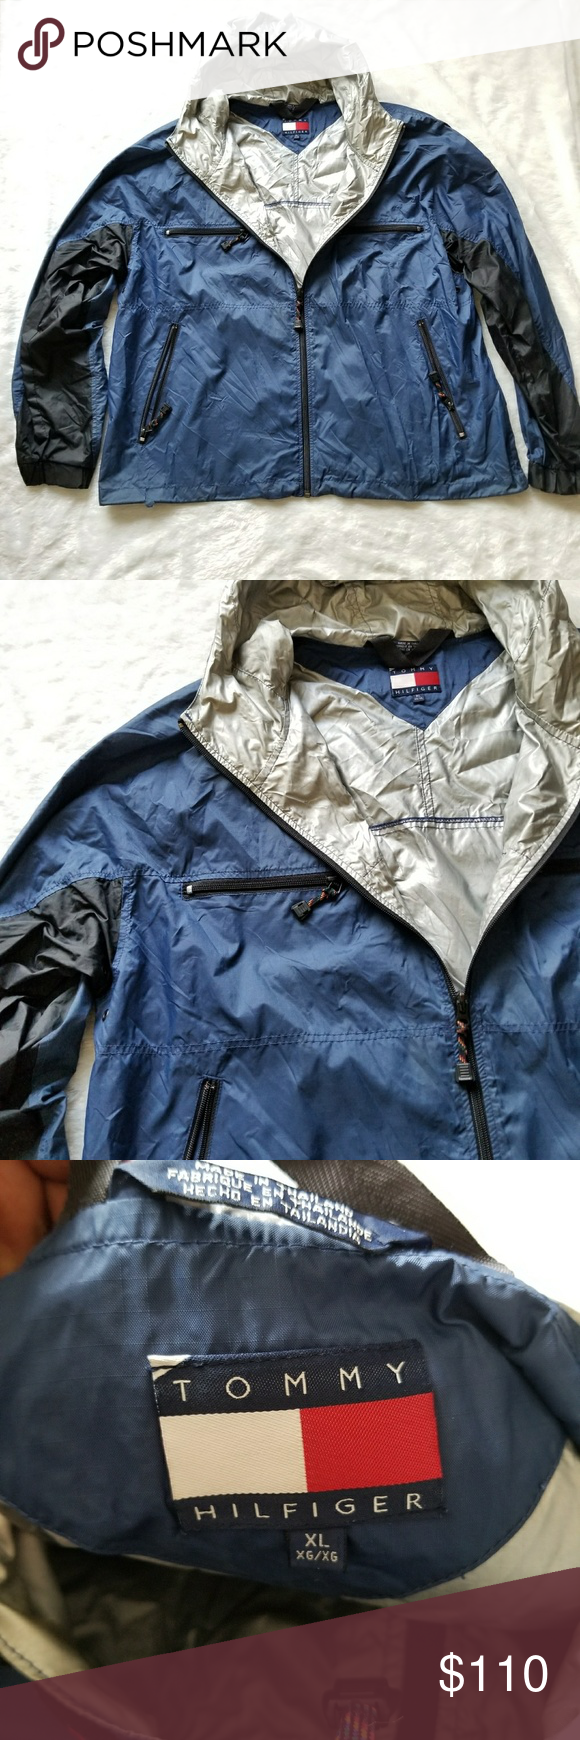 Tommy hilfiger outdoor jacket tommy hilfiger jackets tommy